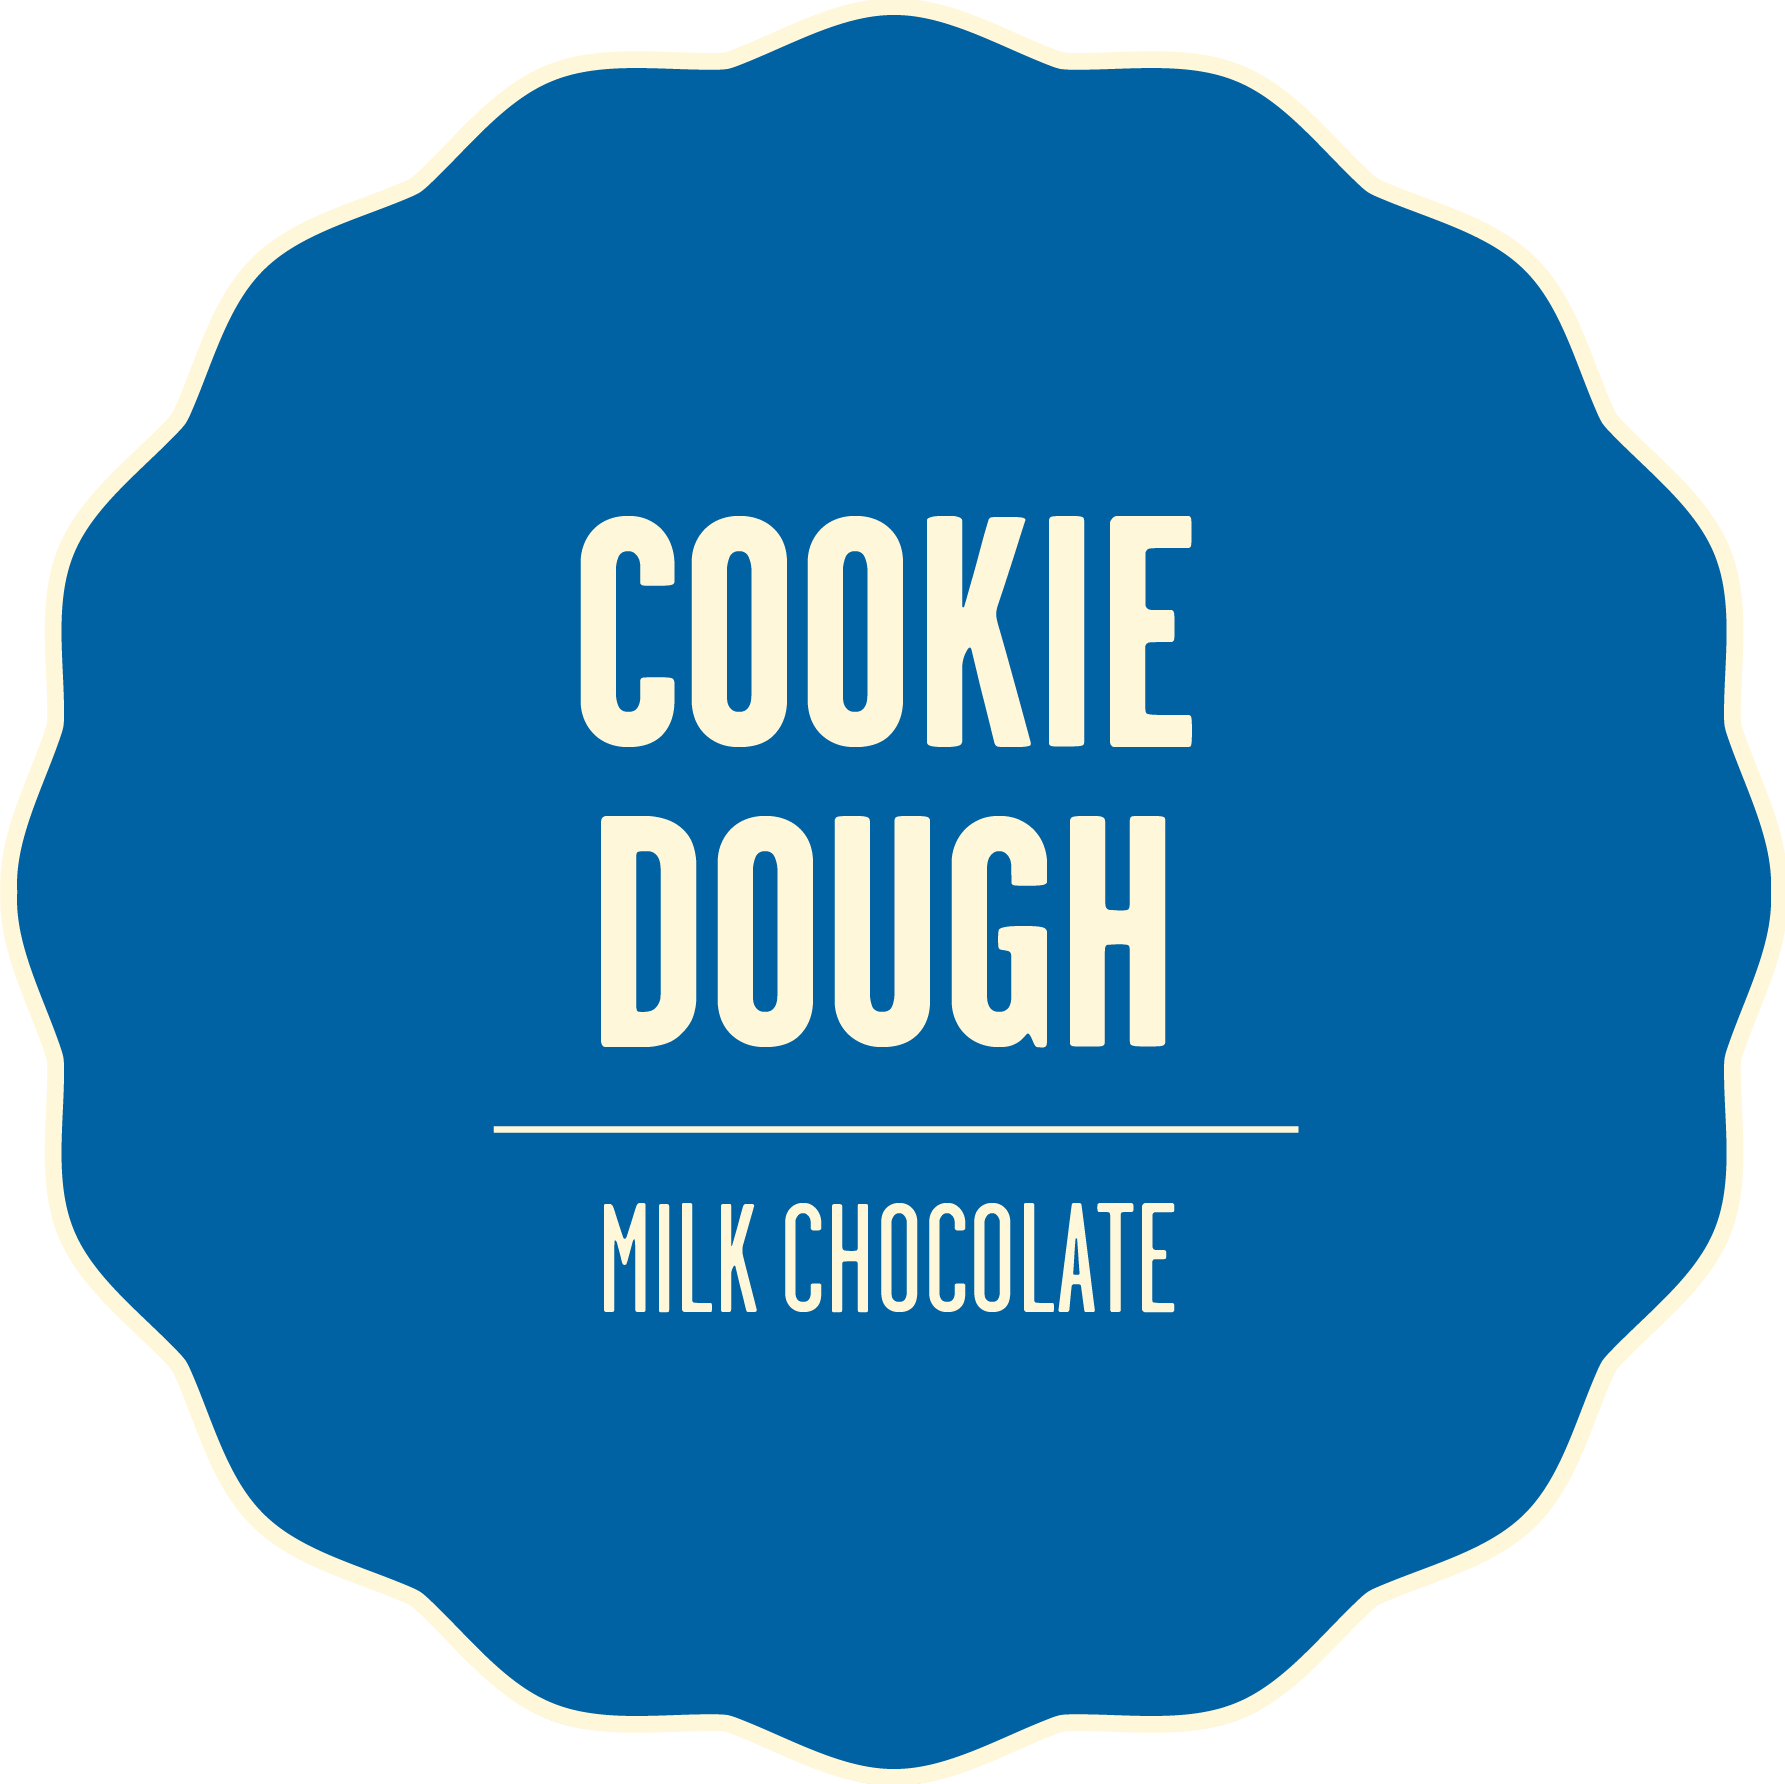 Milk chocolate cookie dough 2x